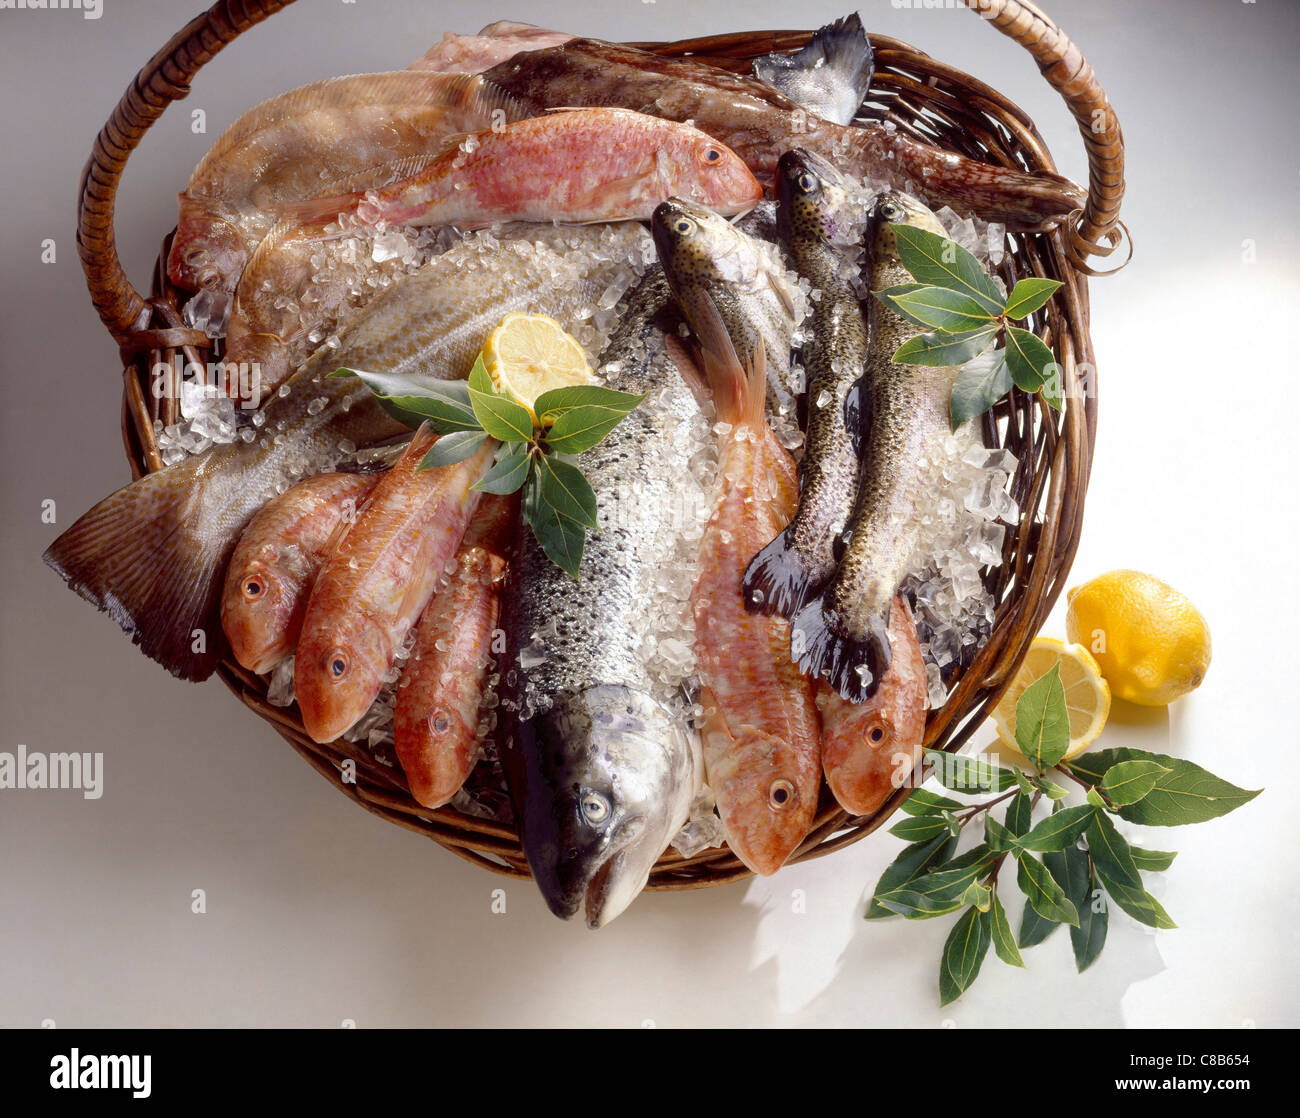 082fcf260f1d Selection Of Fish Stock Photos   Selection Of Fish Stock Images - Alamy